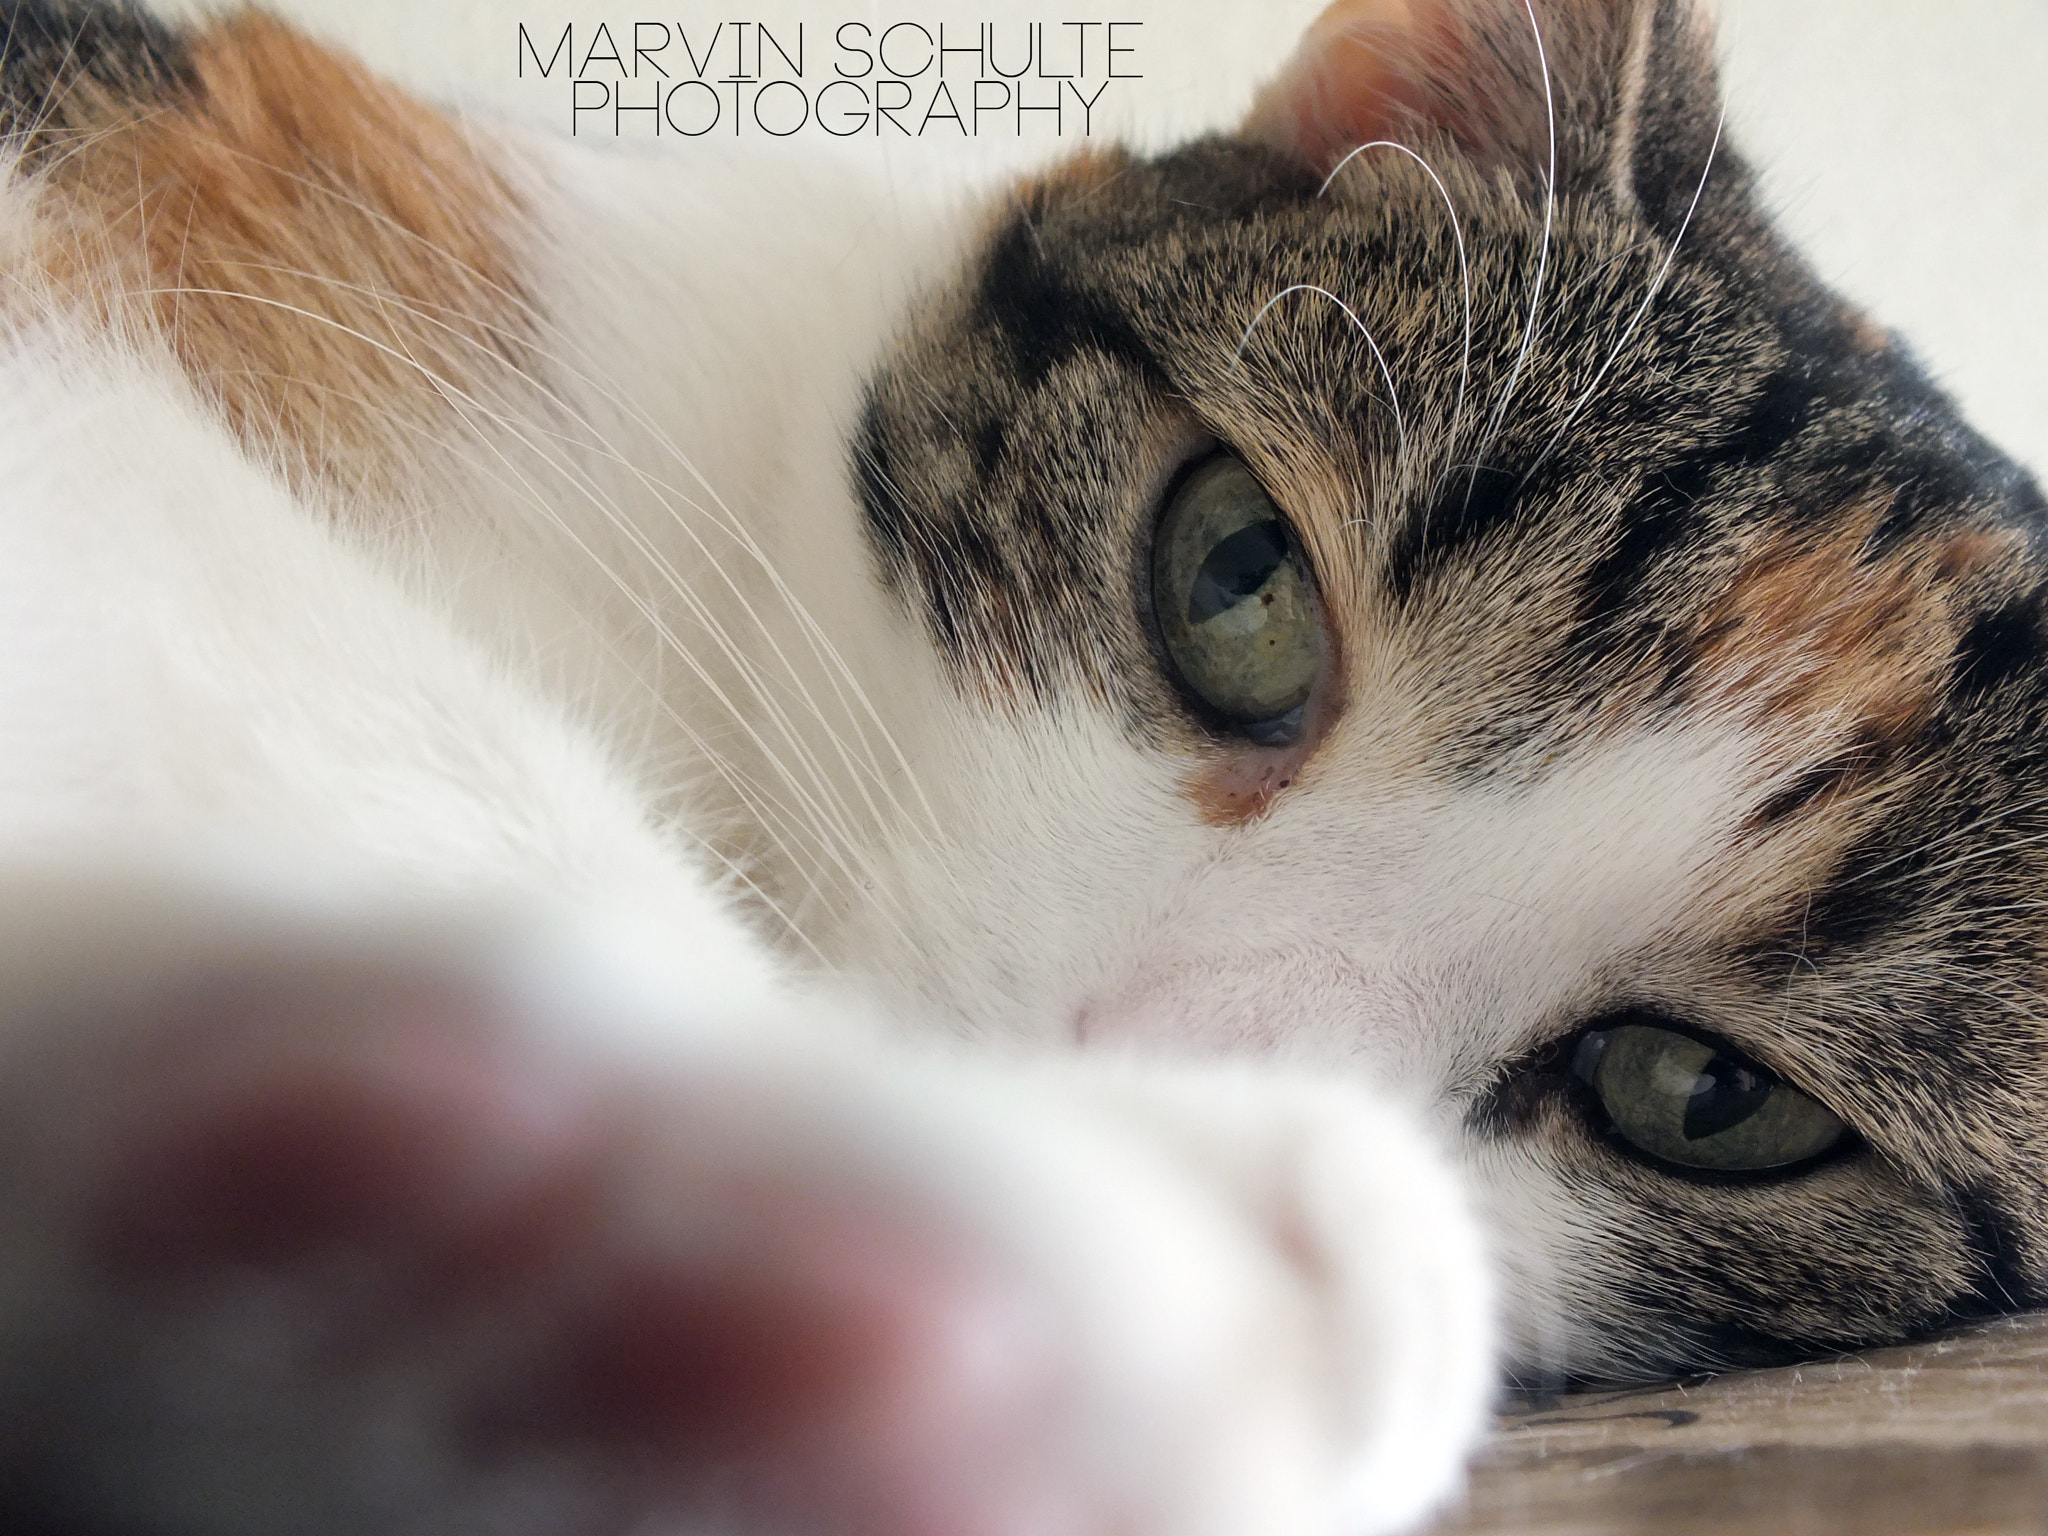 Photograph The cat of my girlfriend.  by Marvin Schulte on 500px